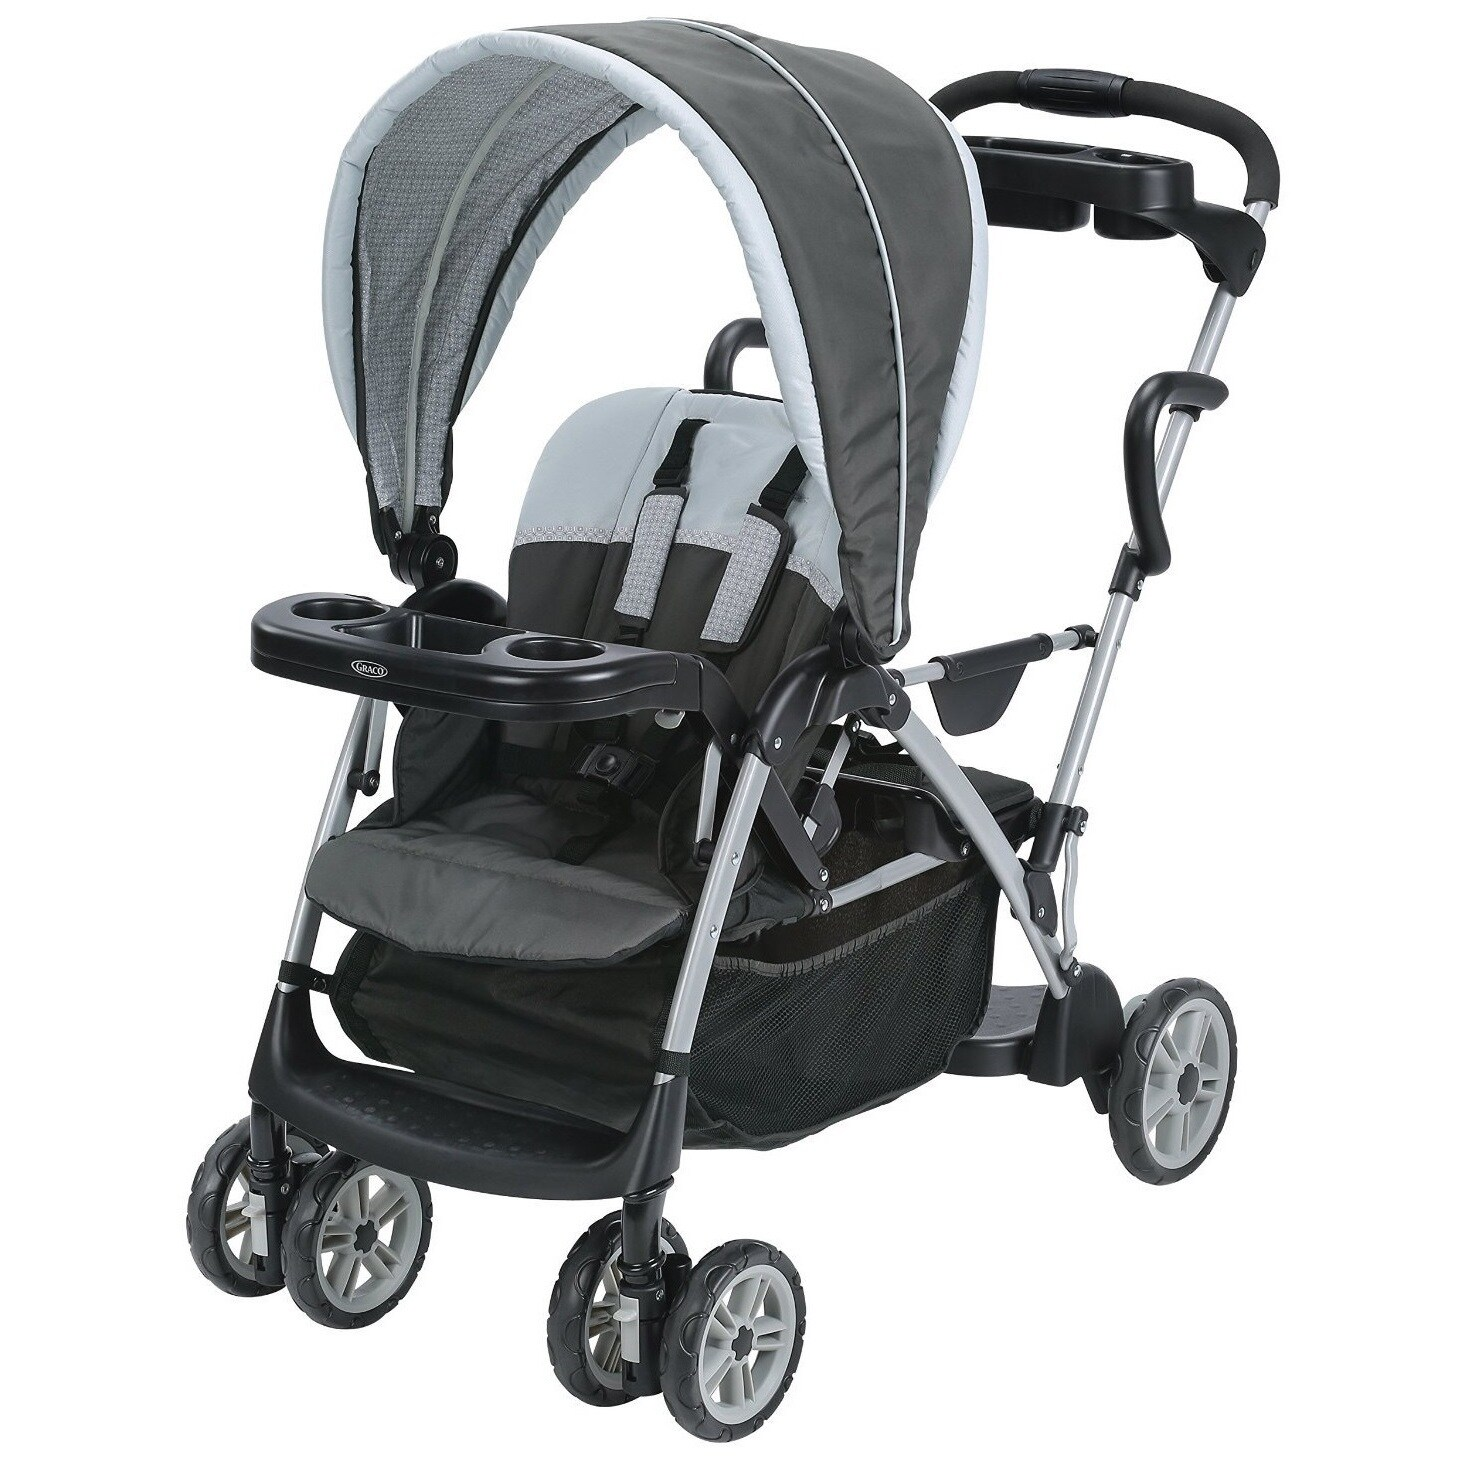 Graco Glacier RoomFor2 Stand And Ride Stroller (Black, Gray)